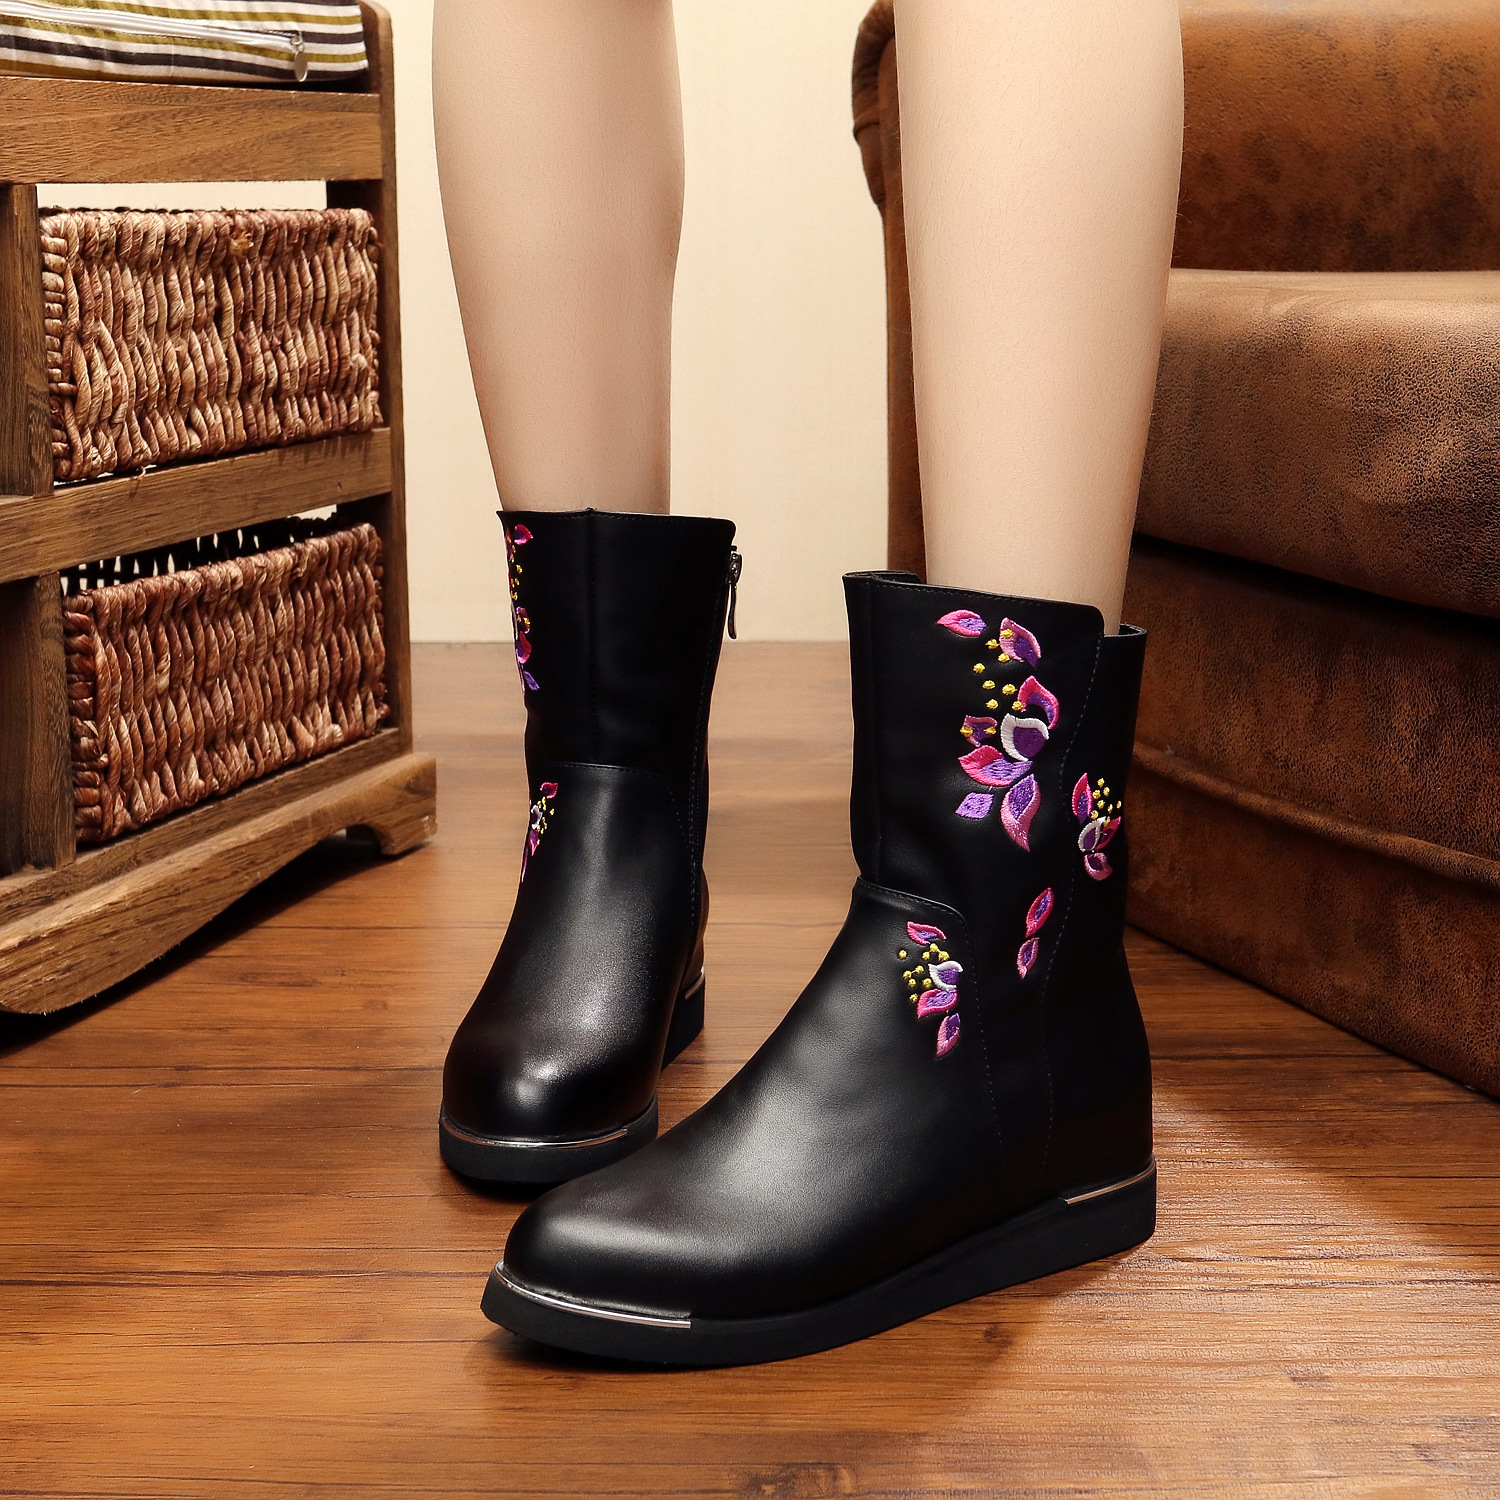 High Quality PU Fashion purple lily pads embroidery Women Winter Snow Boots keep Warm boot shoes Ladies short Boots<br><br>Aliexpress